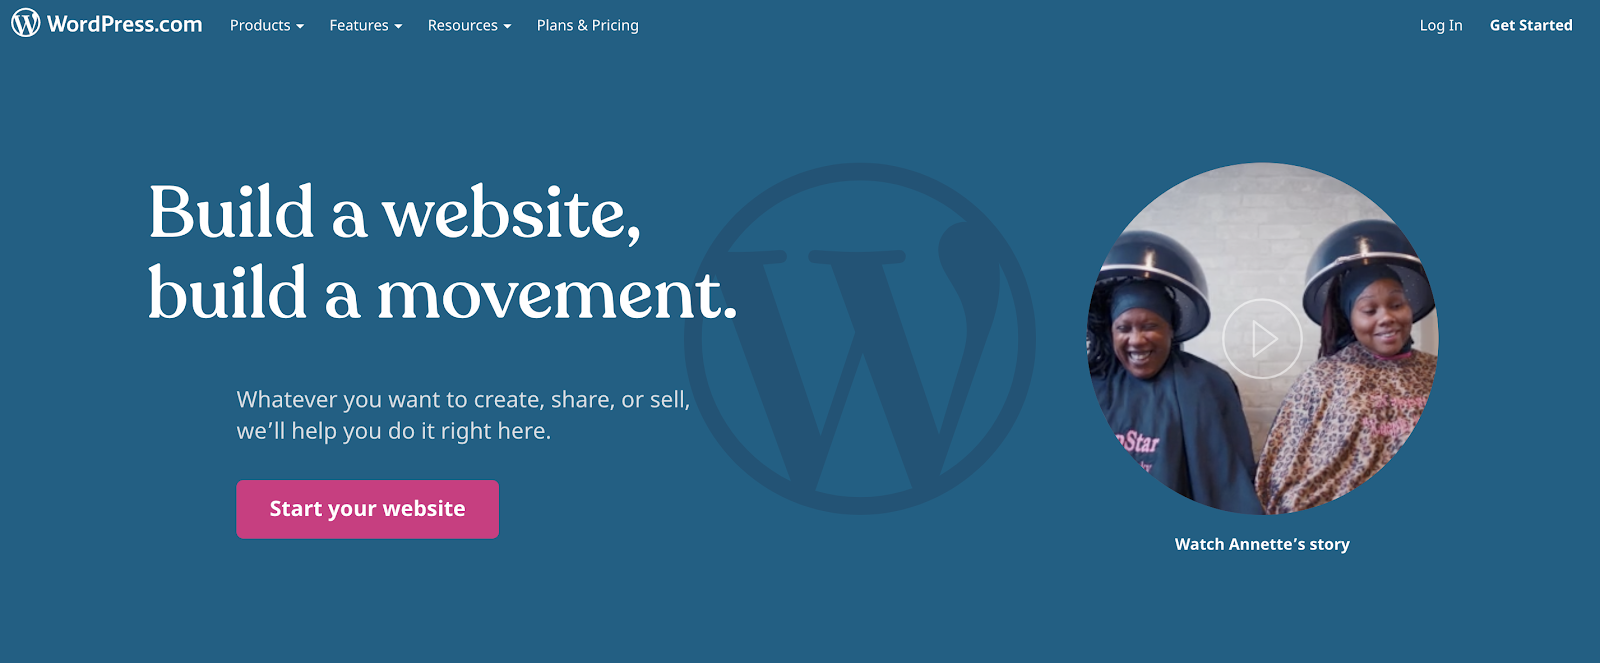 WordPress Dot Com as a Top Free Blogging Site to Use